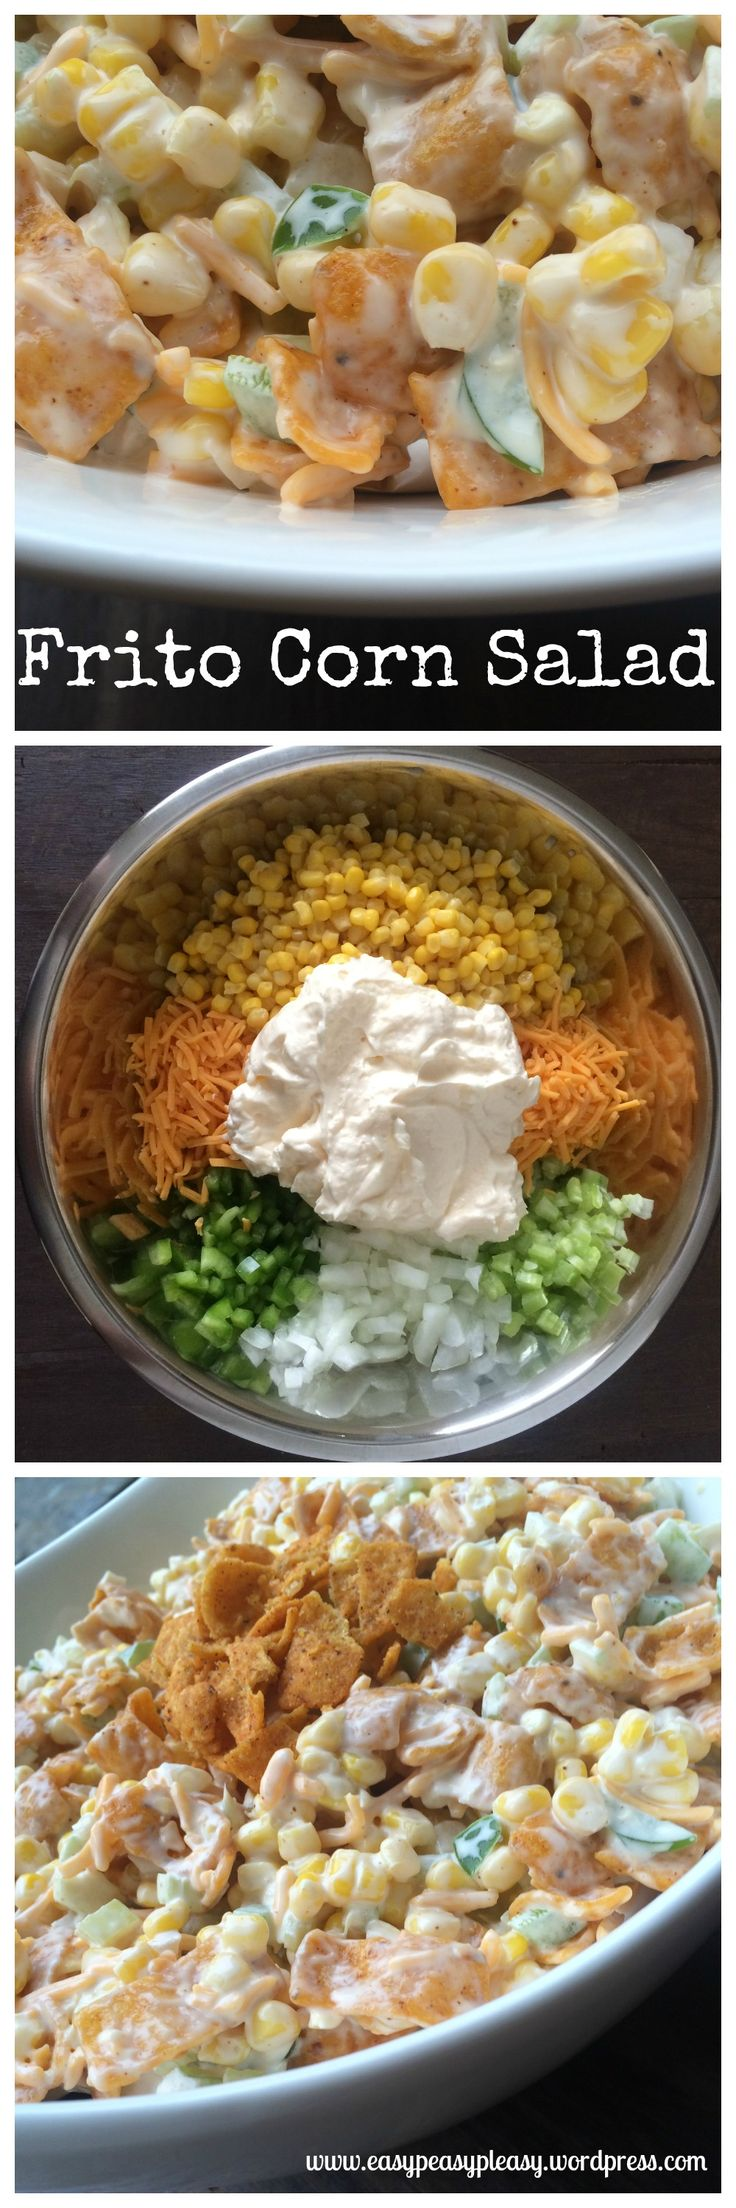 ... ideas about Corn Chip Salad on Pinterest | Corn Chips, Salad and